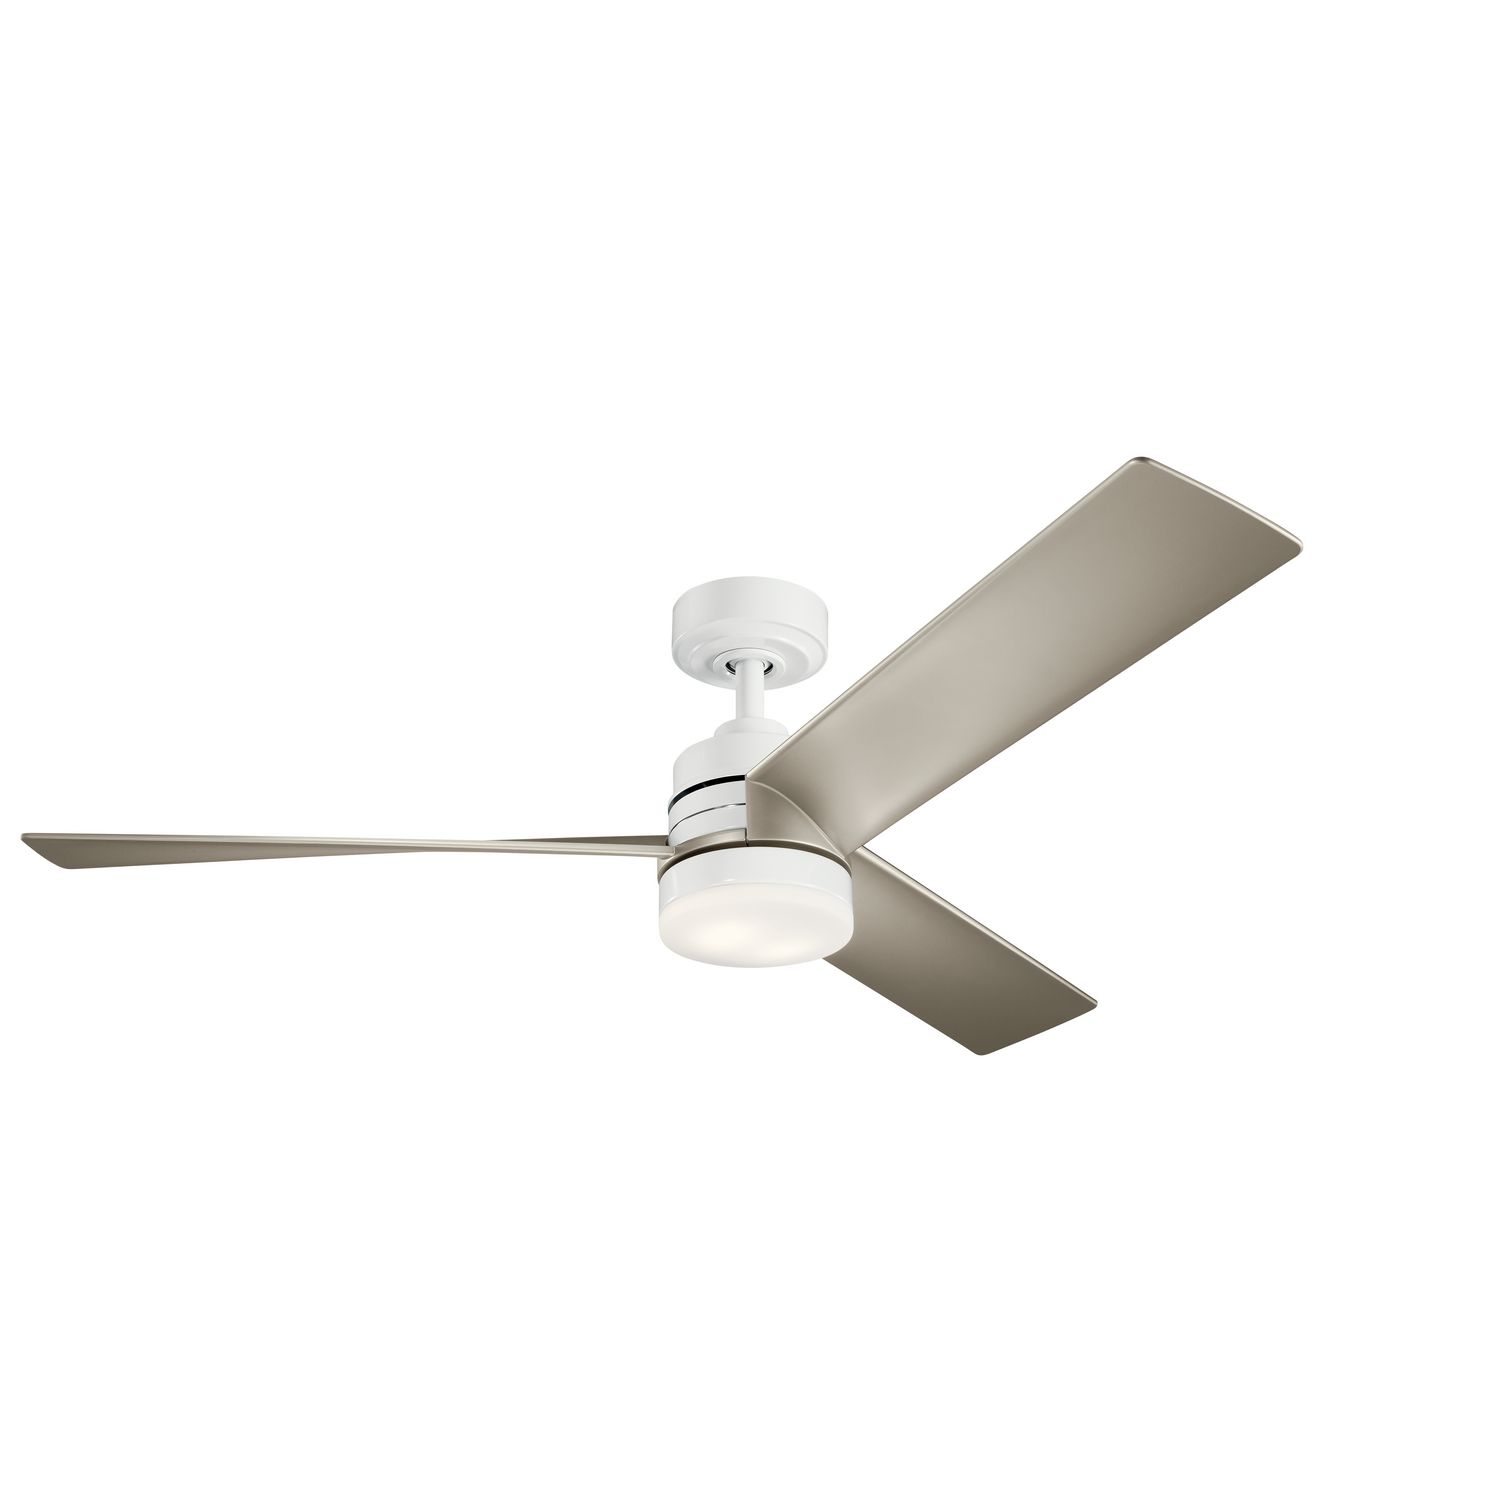 52 inchCeiling Fan from the Spyn collection by Kichler 300275WH